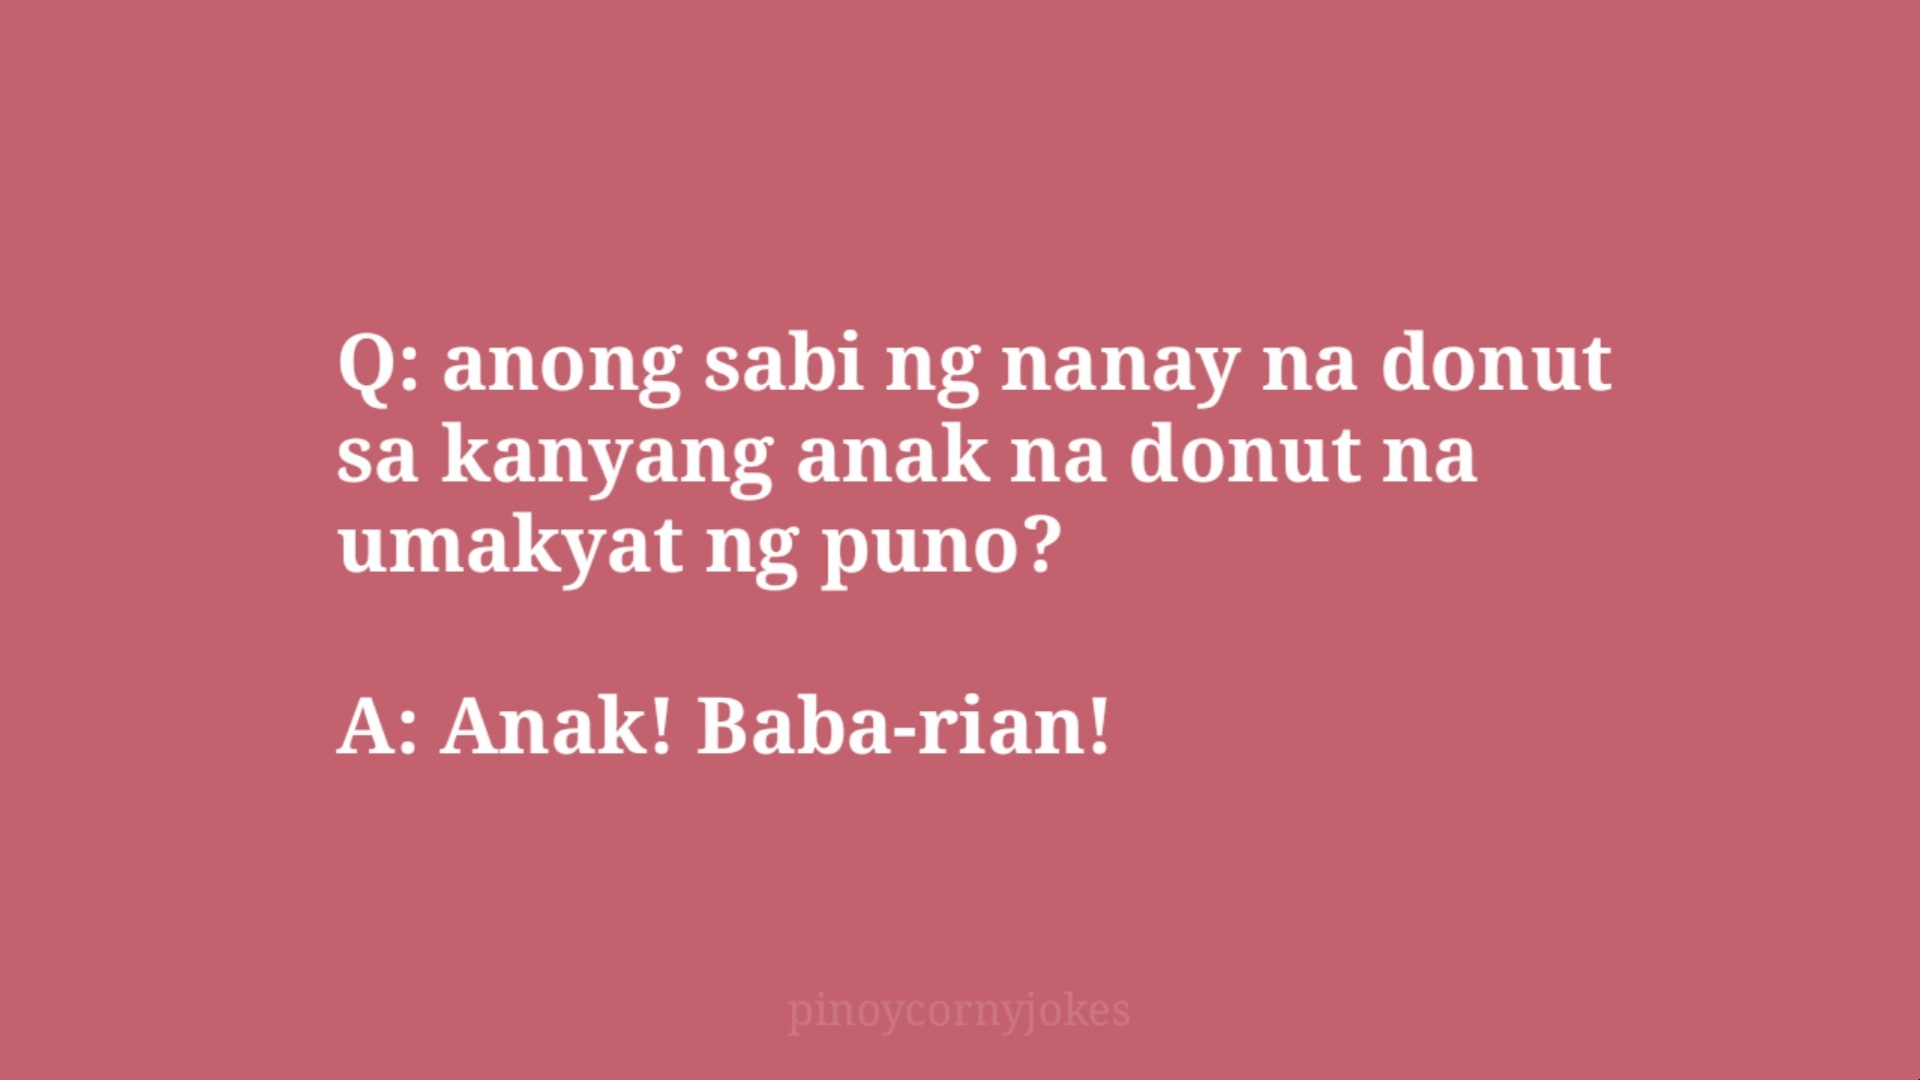 babarian pinoy jokes question and answer